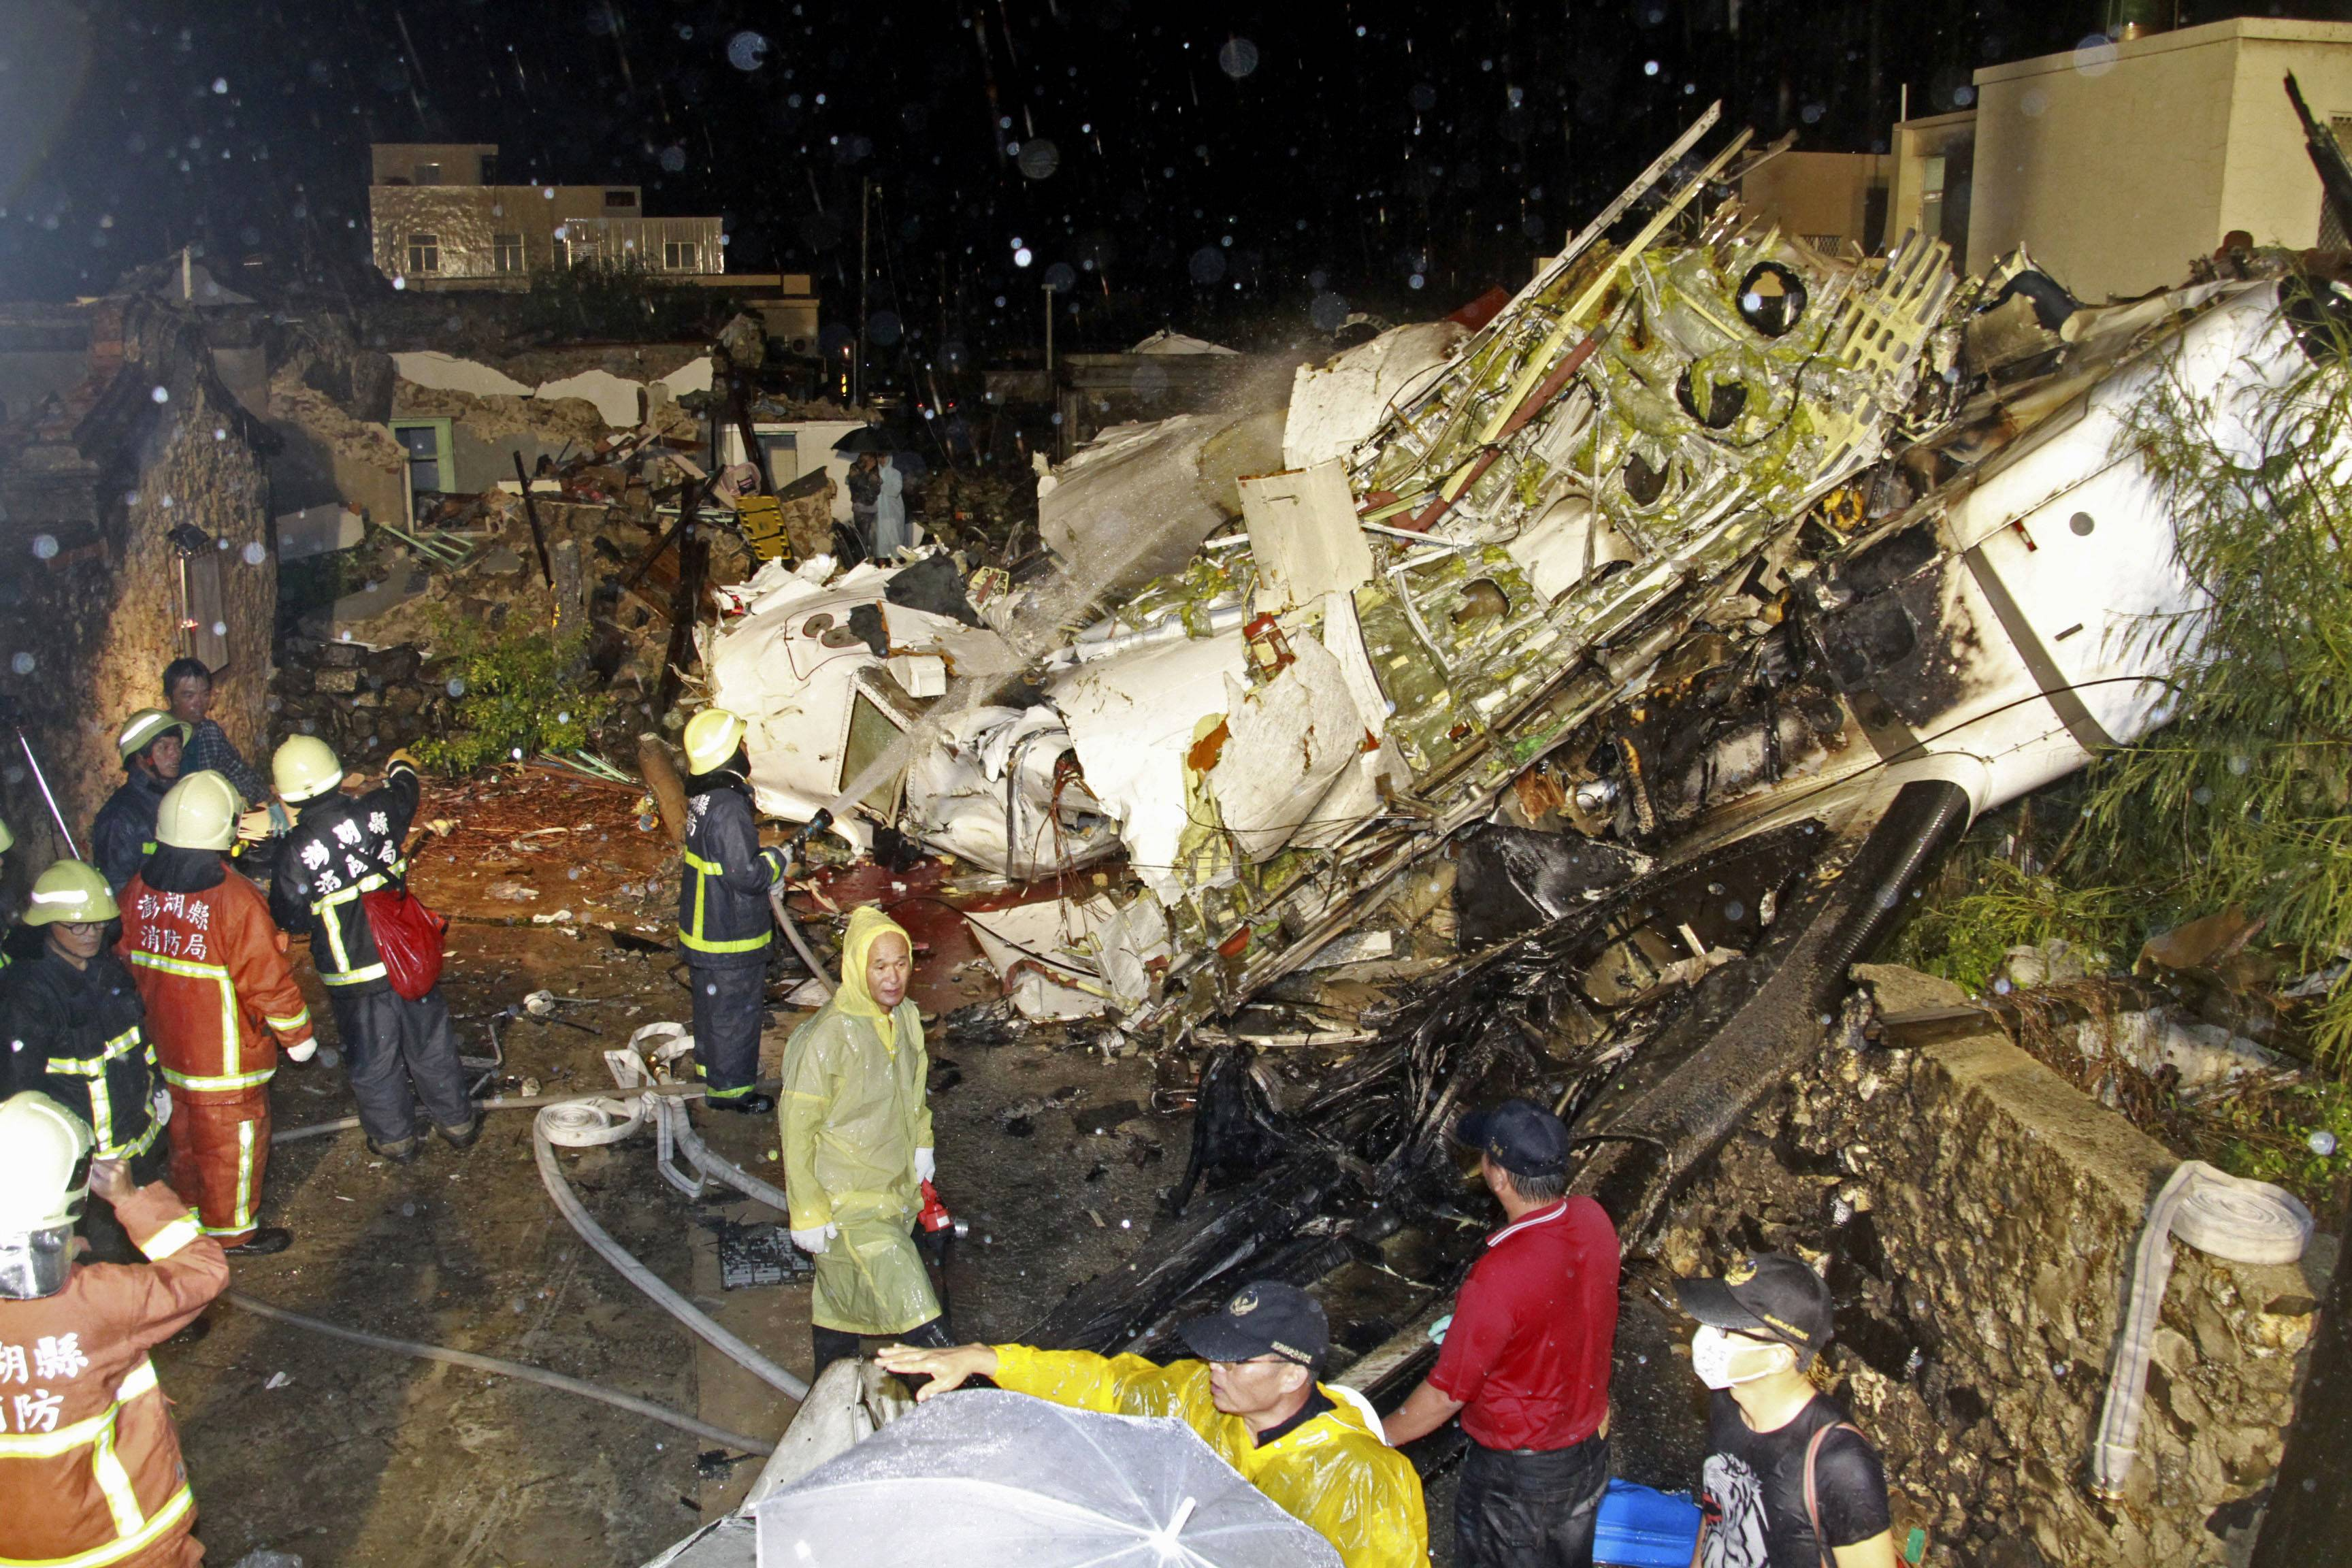 Rescue workers work next to the wreckage of TransAsia Airways flight GE222 which crashed while attempting to land in stormy weather on the Taiwanese island of Penghu, late Wednesday, killing 47 people and wrecking houses and cars on the ground.